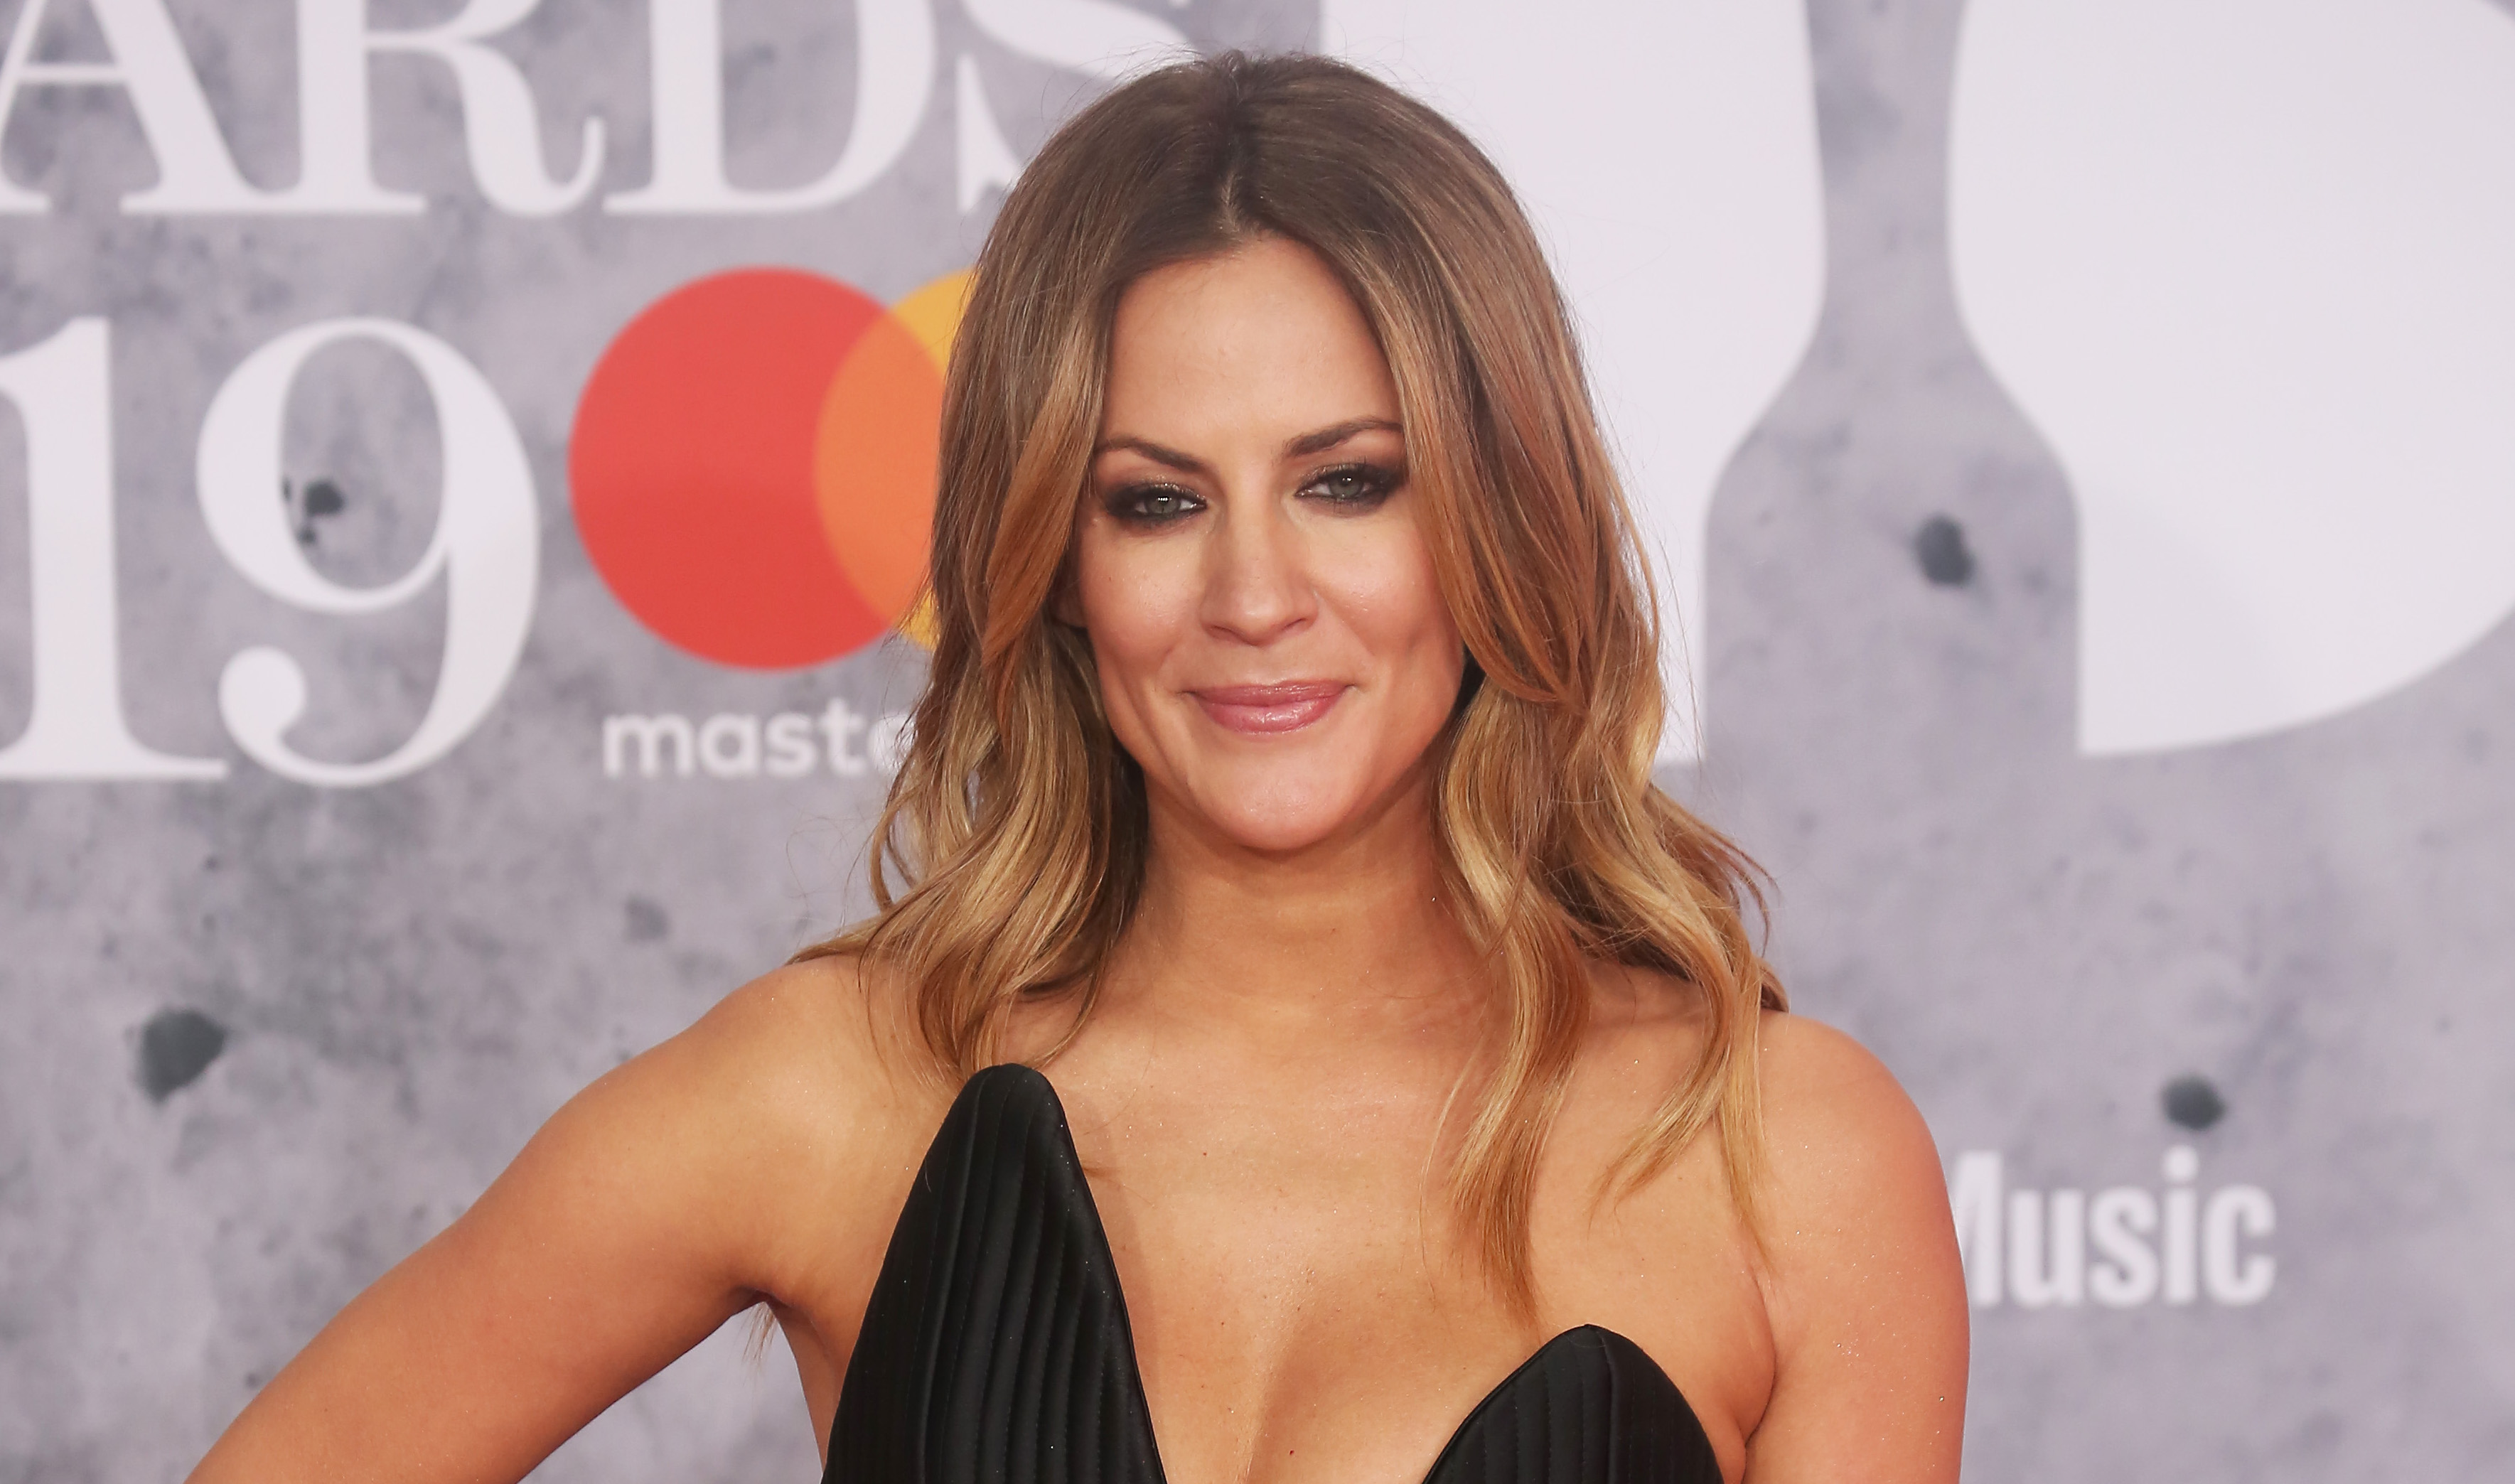 Caroline Flack debuts sleek new hairdo on social media